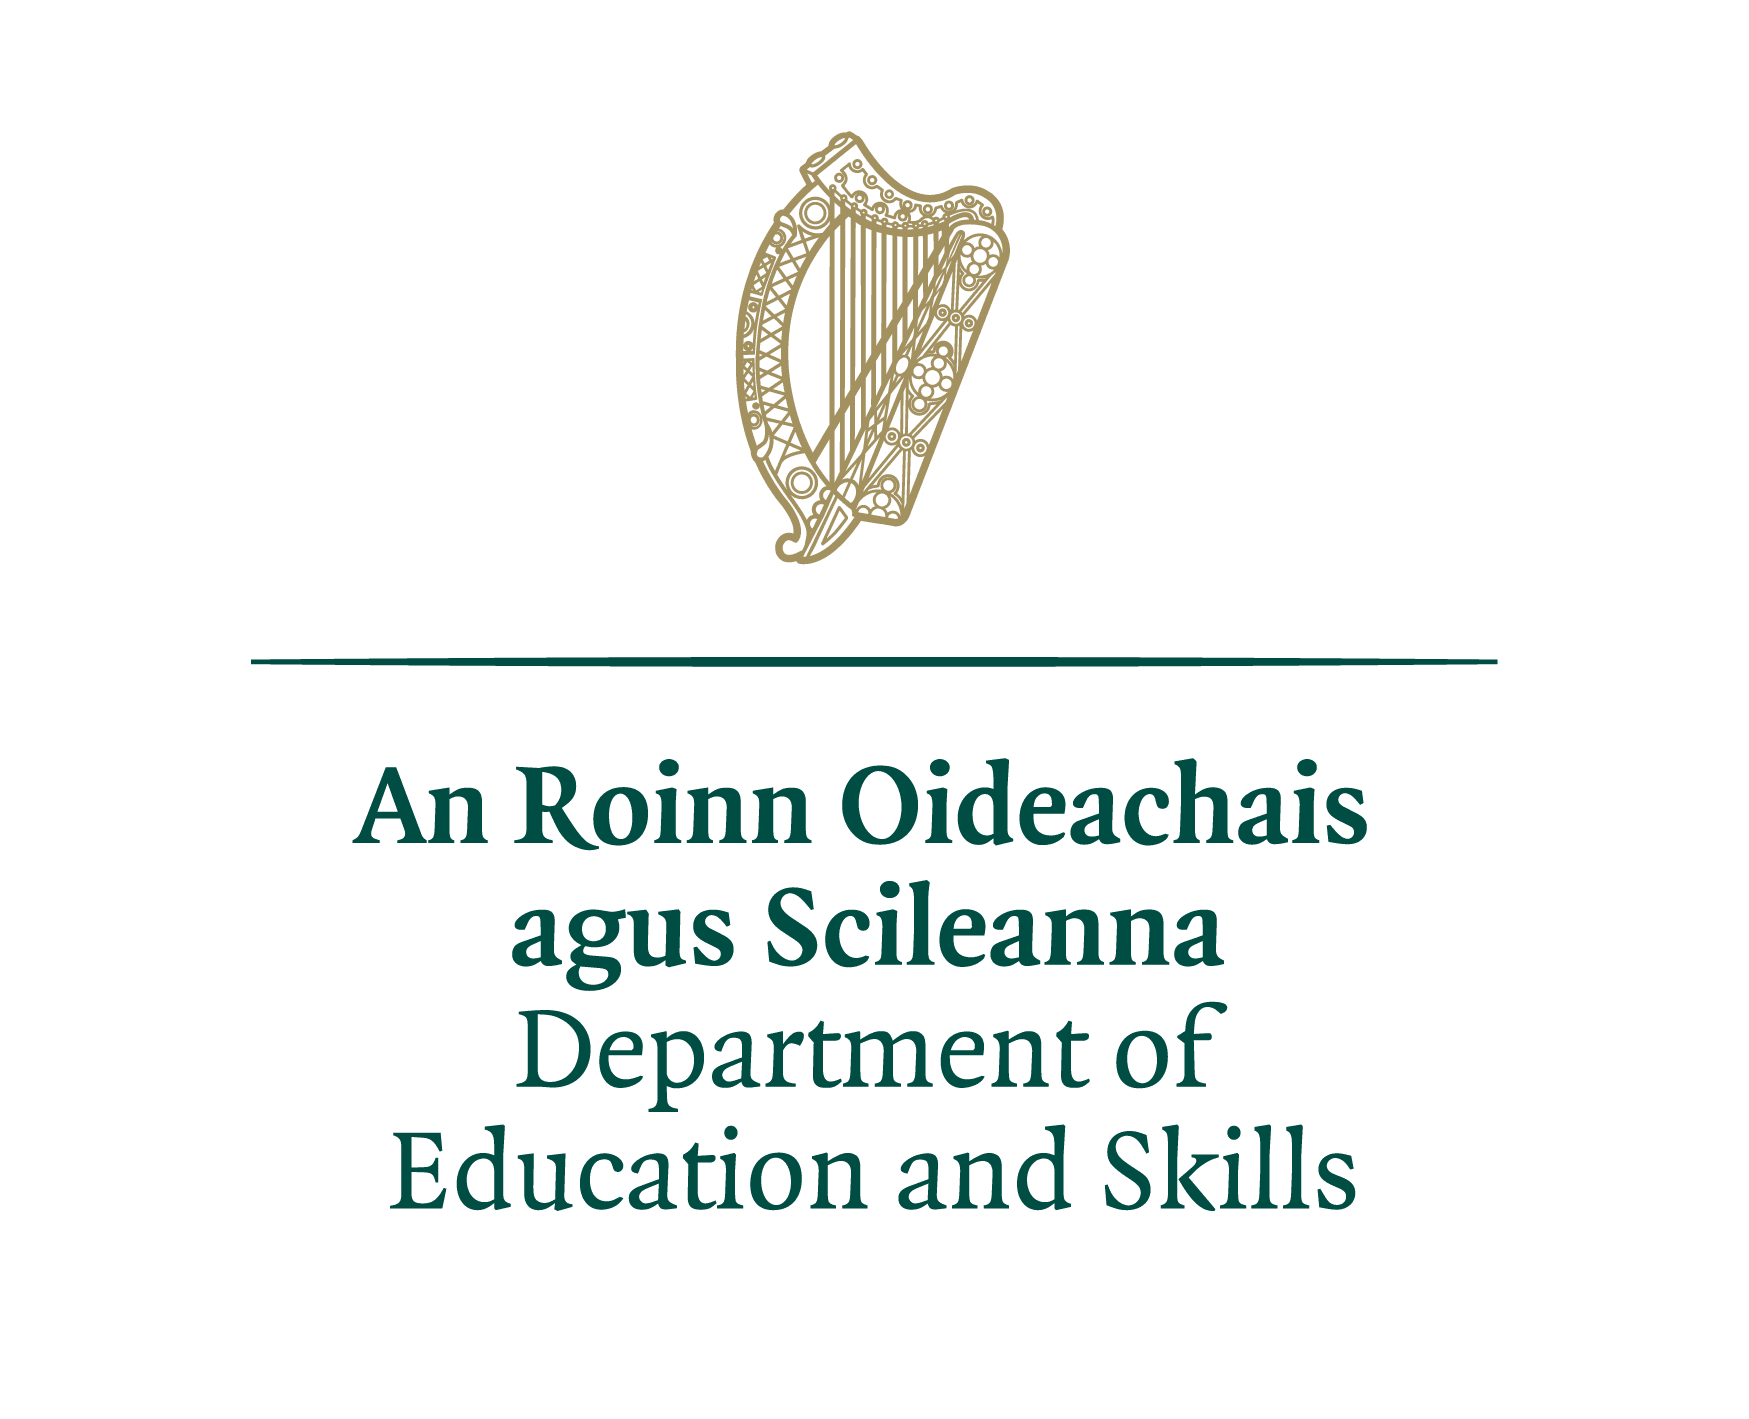 Department of Education and Skills Ireland